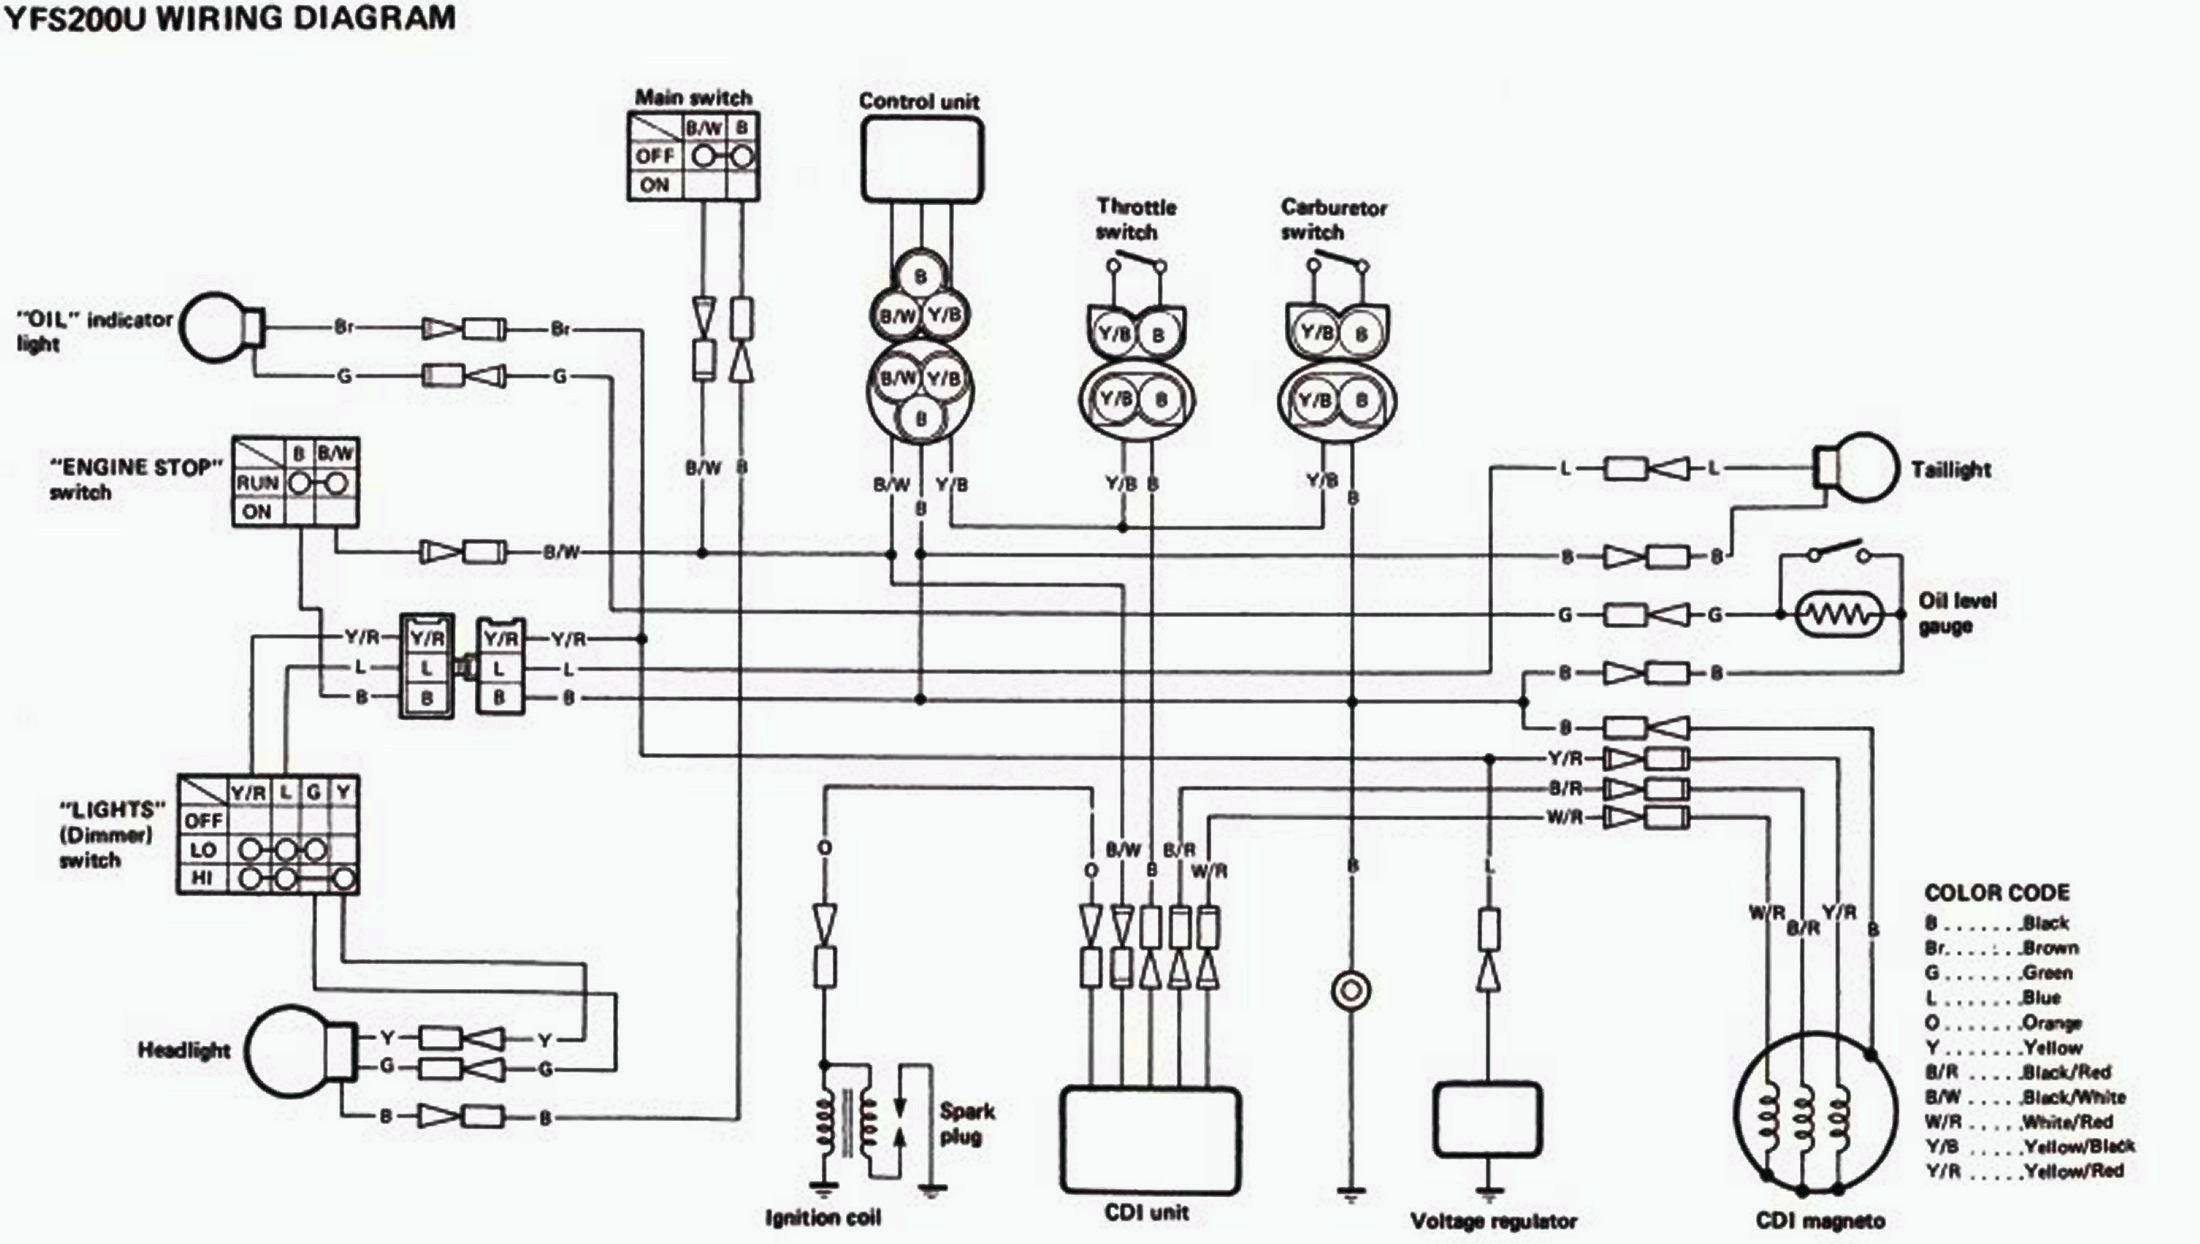 yamaha blaster wiring diagram on yamaha blaster 200 wiring diagram